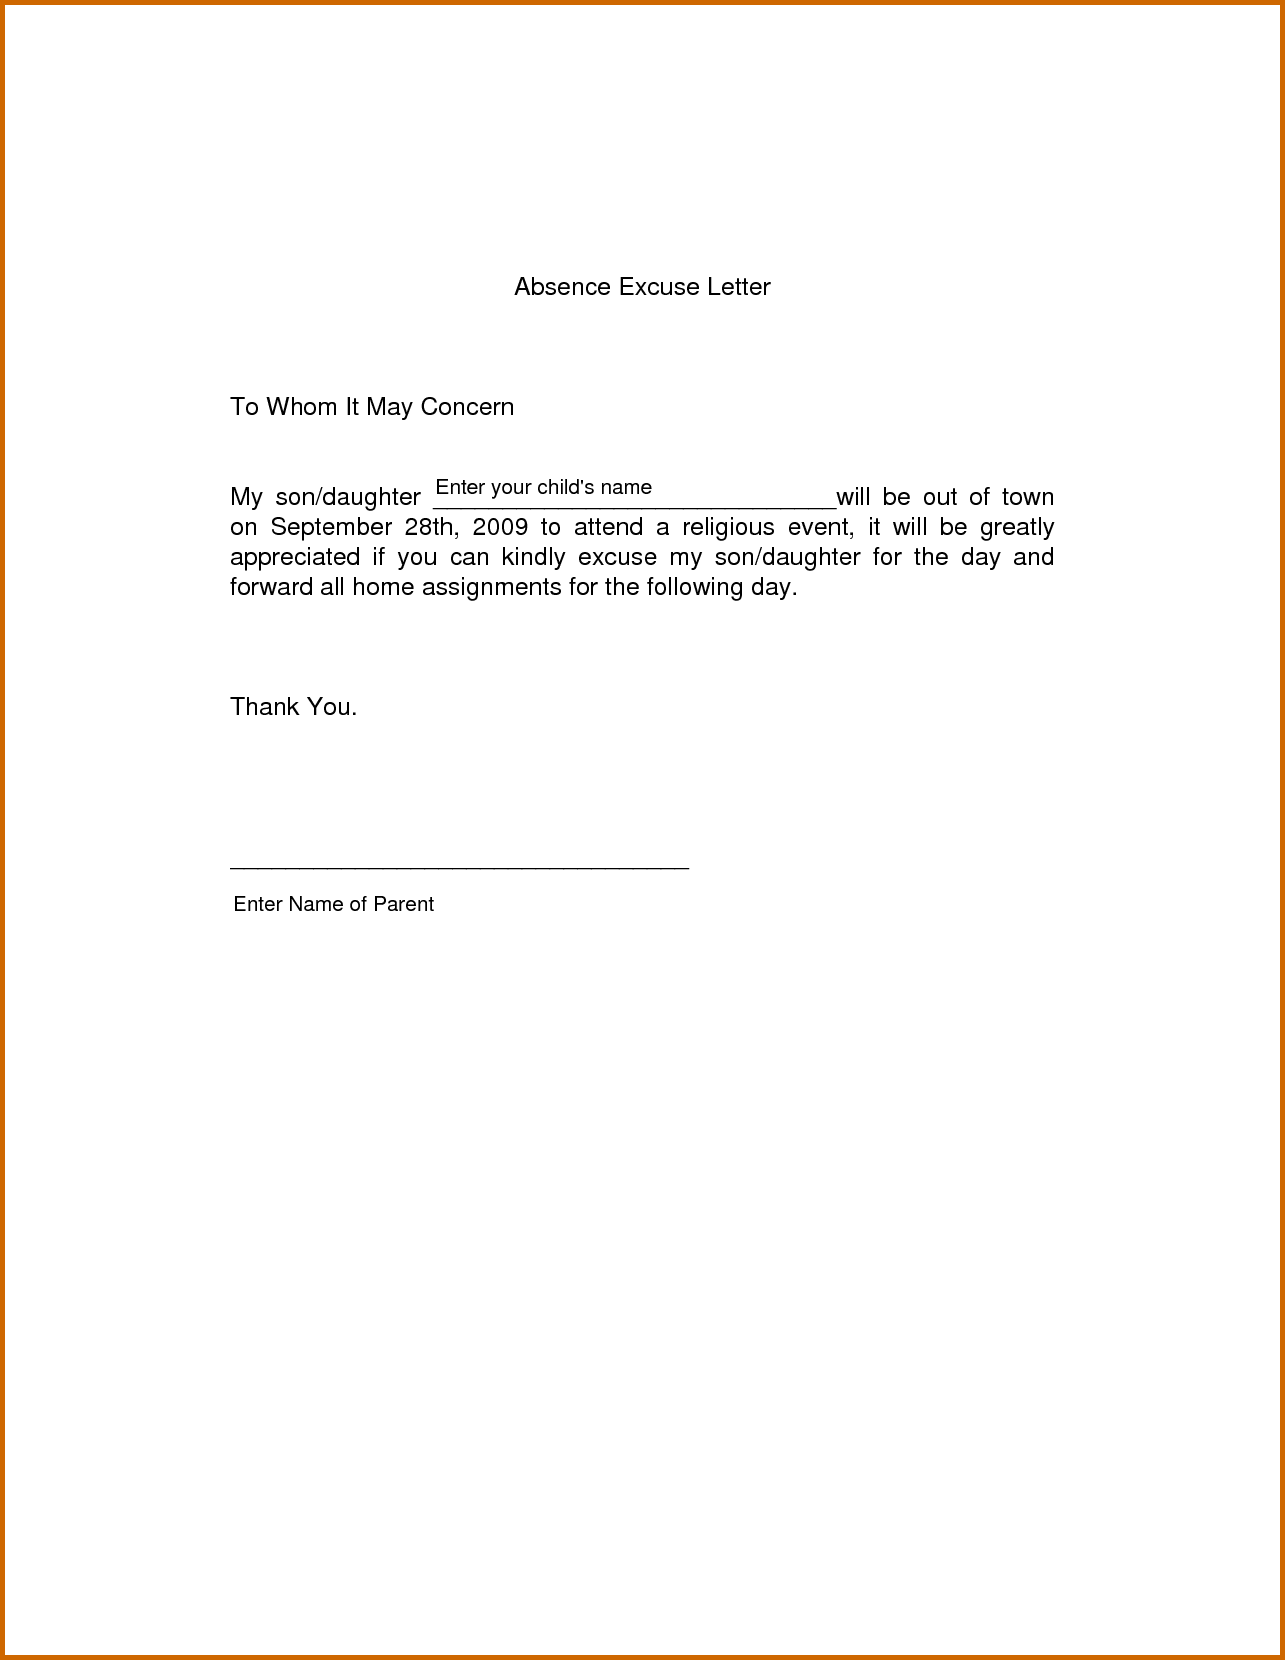 absent from school letter template